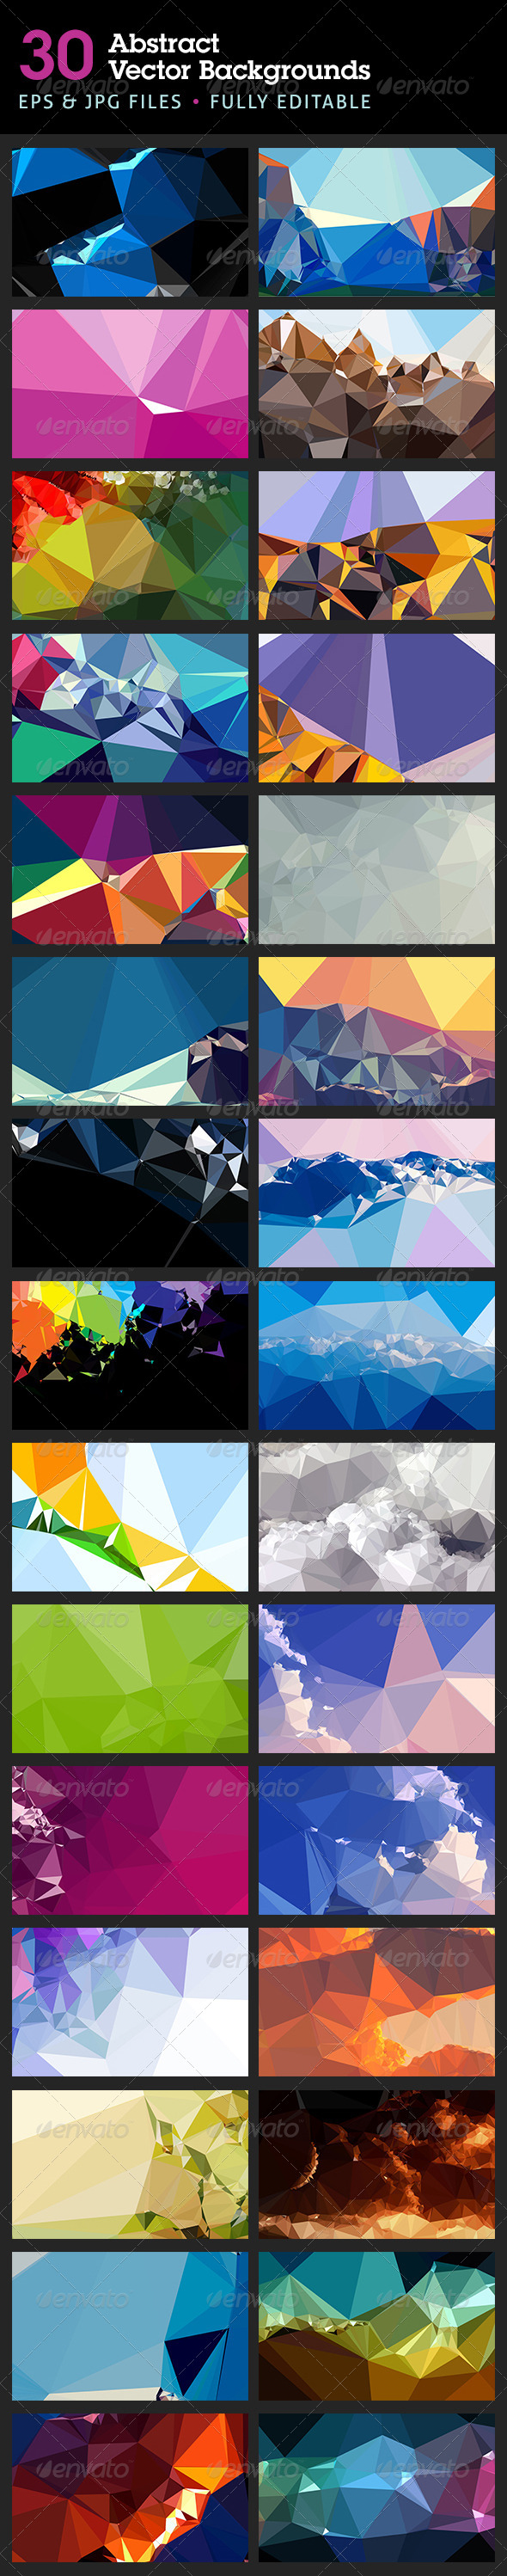 Abstract Backgrounds in Vector Format